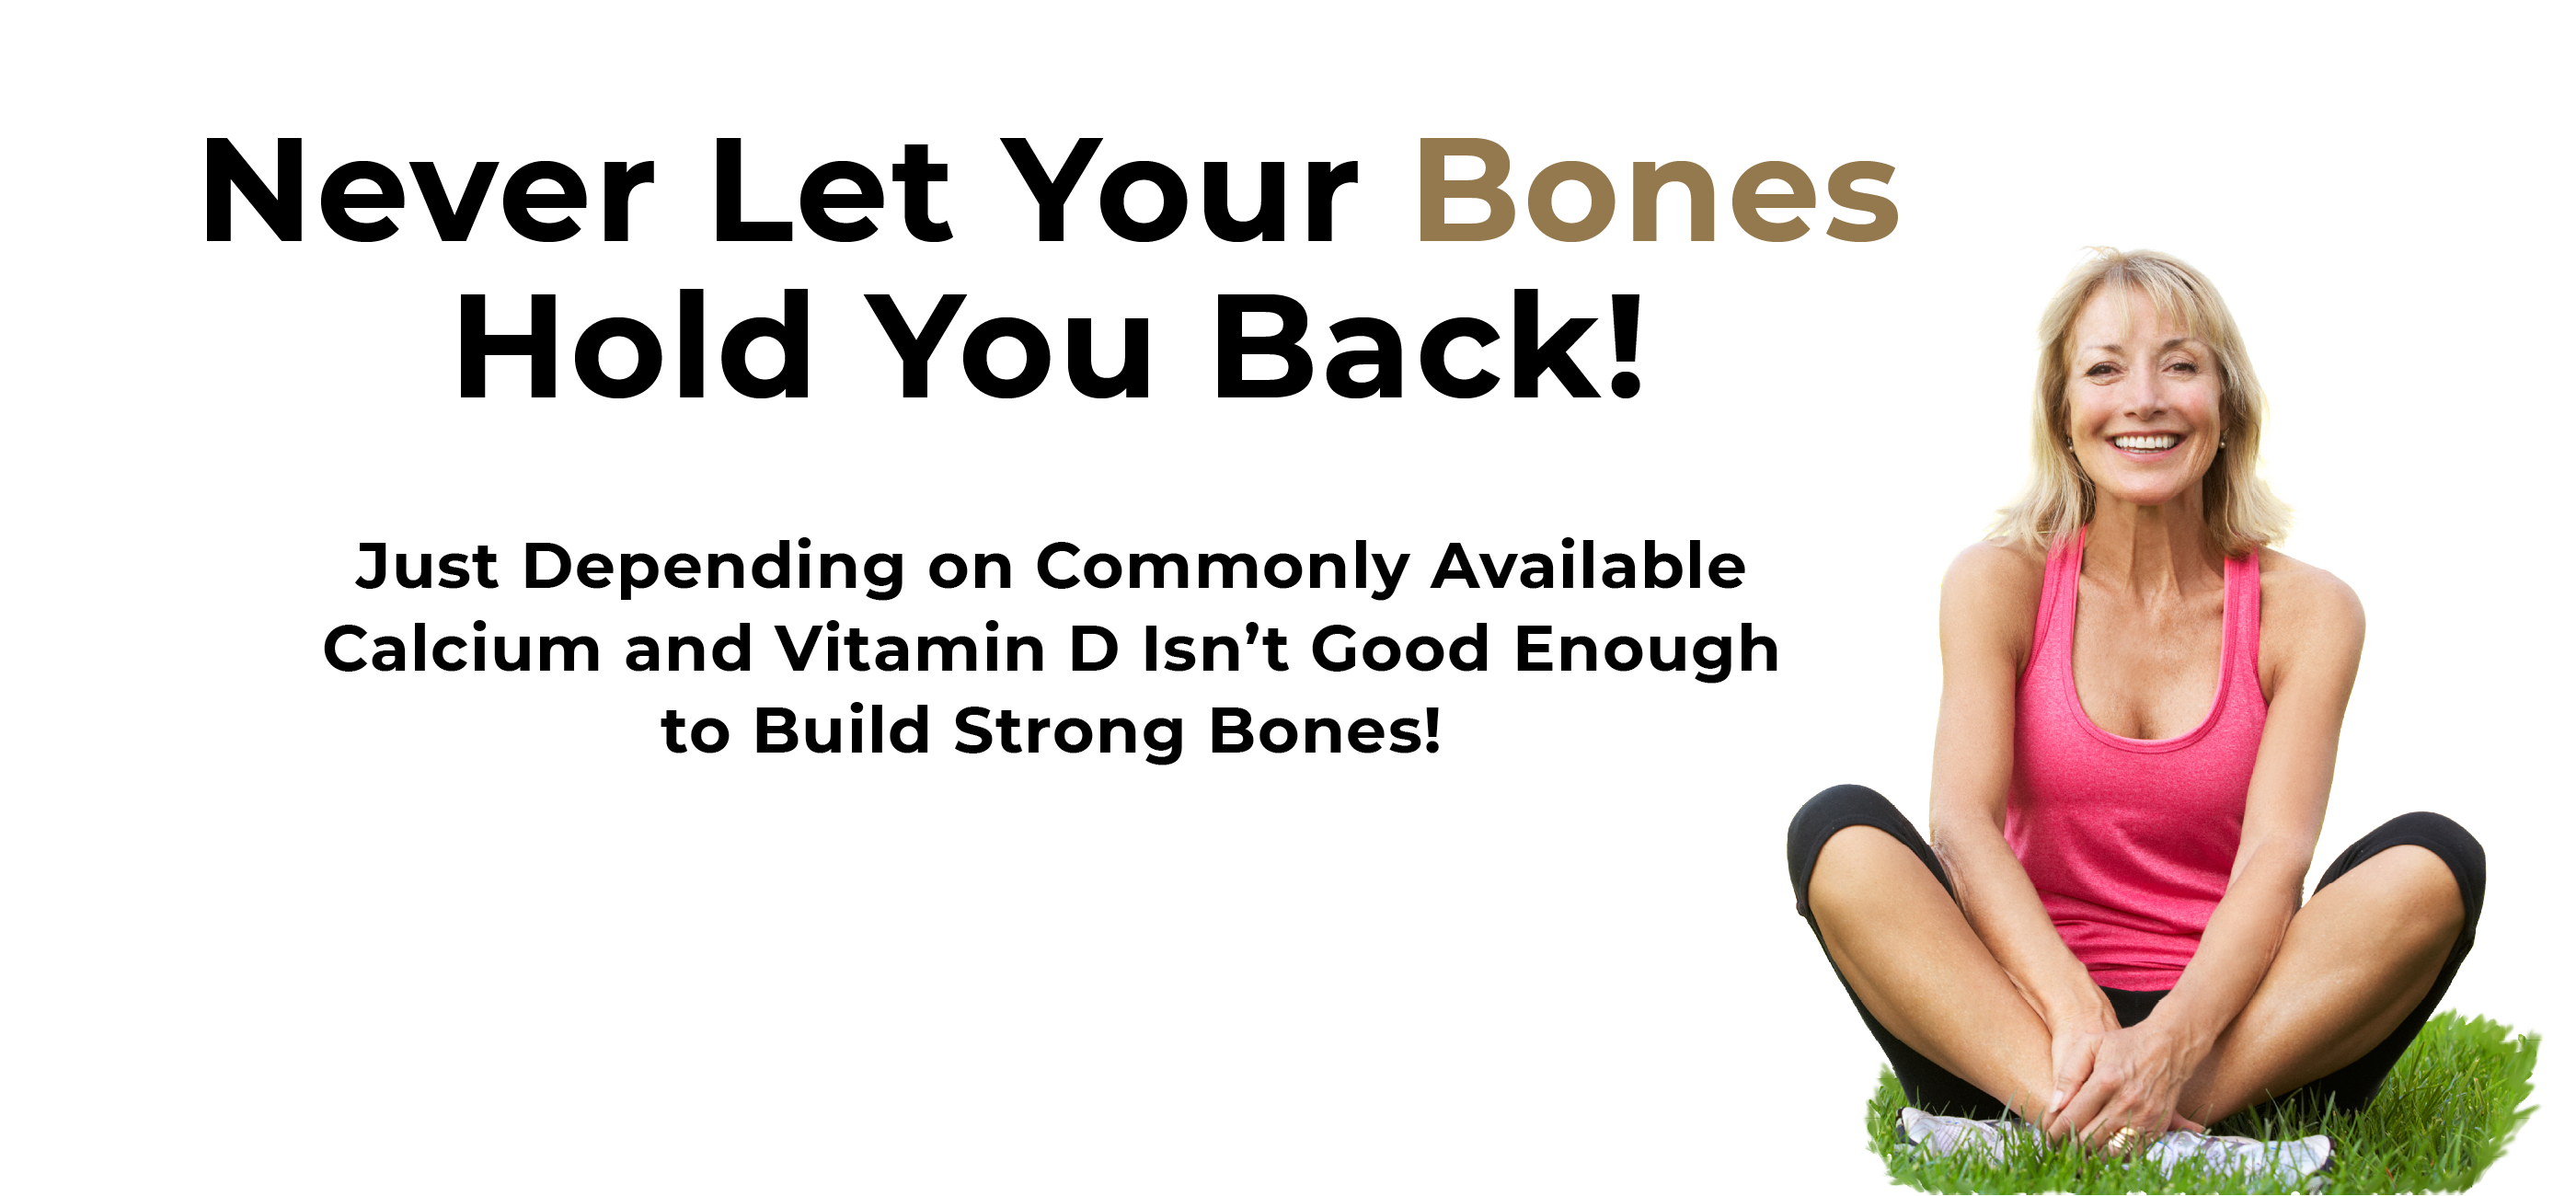 TrueOsteo Never Let Your Bones Hold You Back!